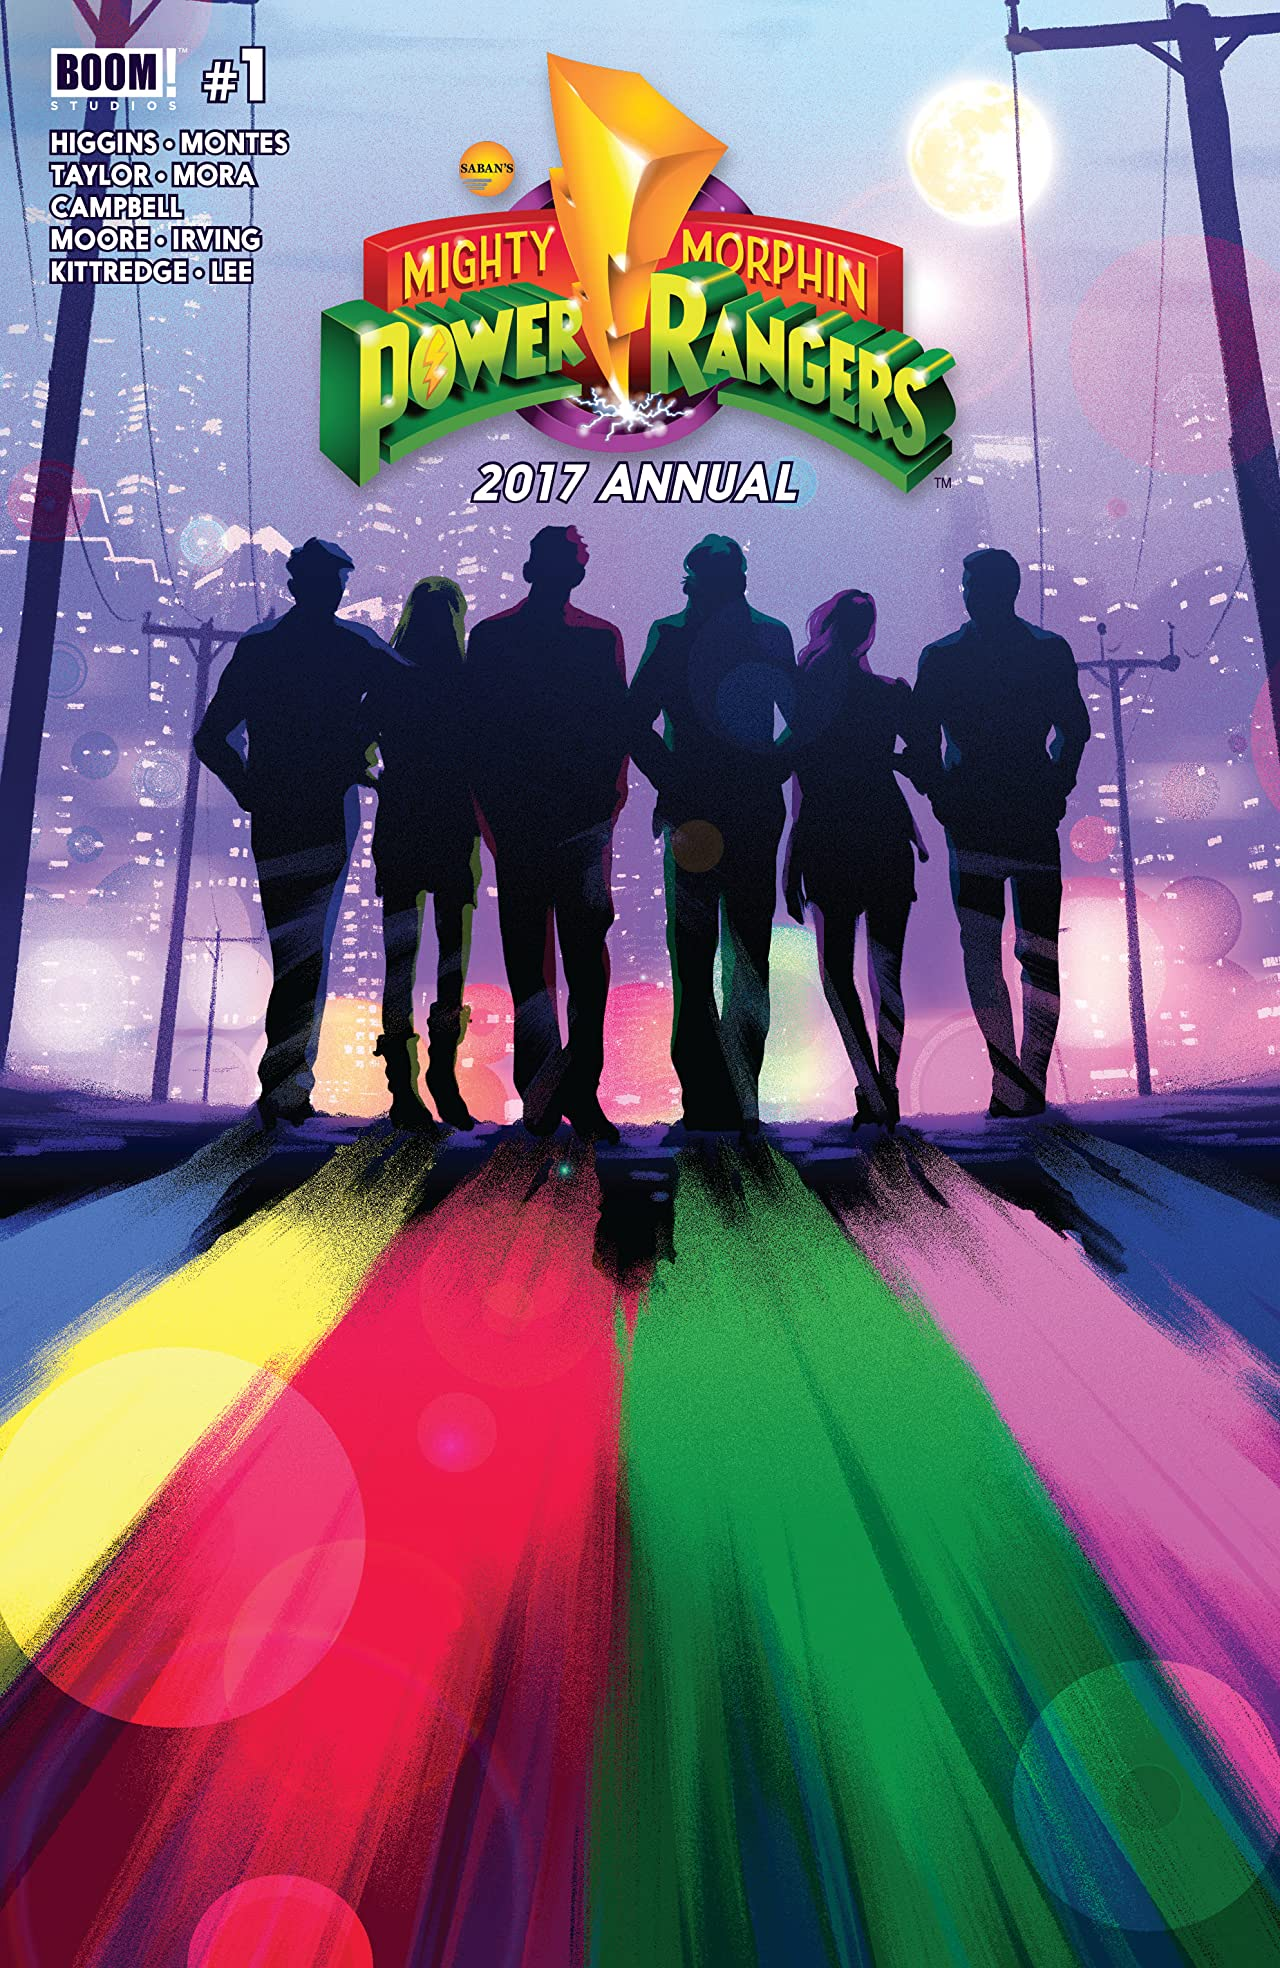 Mighty Morphin Power Rangers 2017 Annual